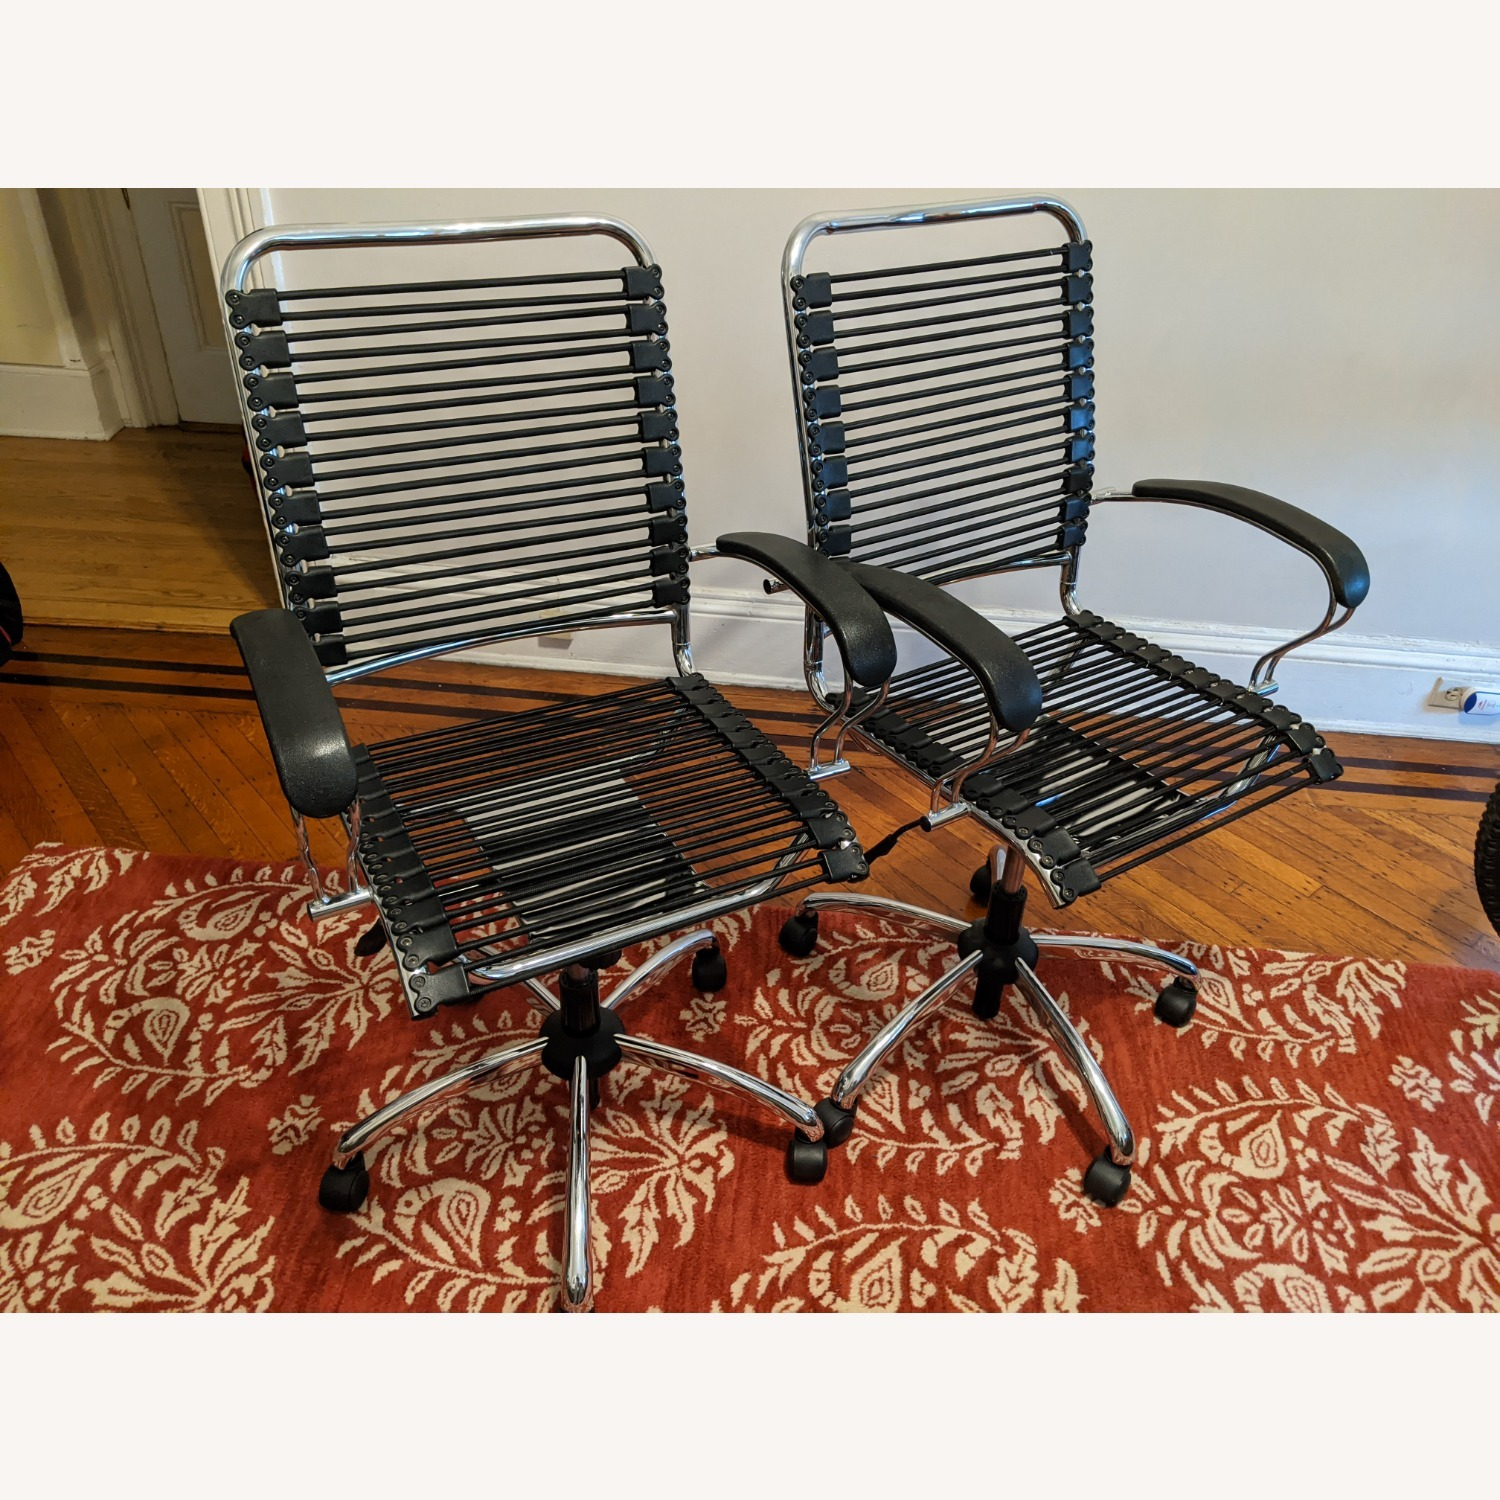 Modern Bungee Desk Chairs with Chrome Accents - image-4